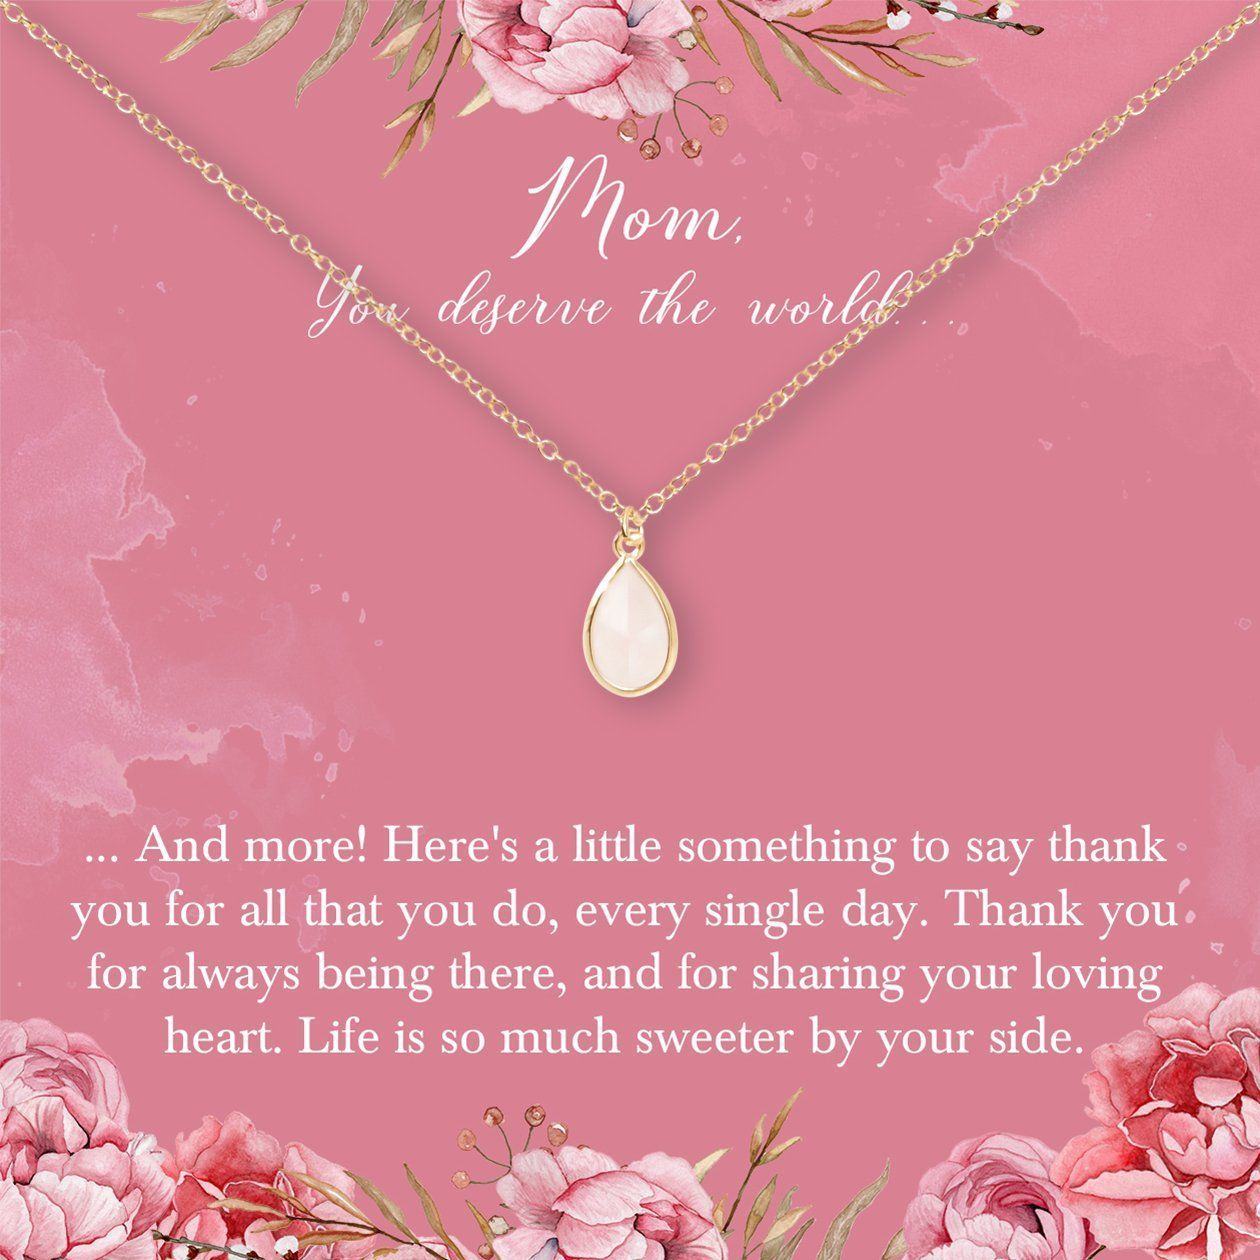 Best friends dear ava with images aunt gifts